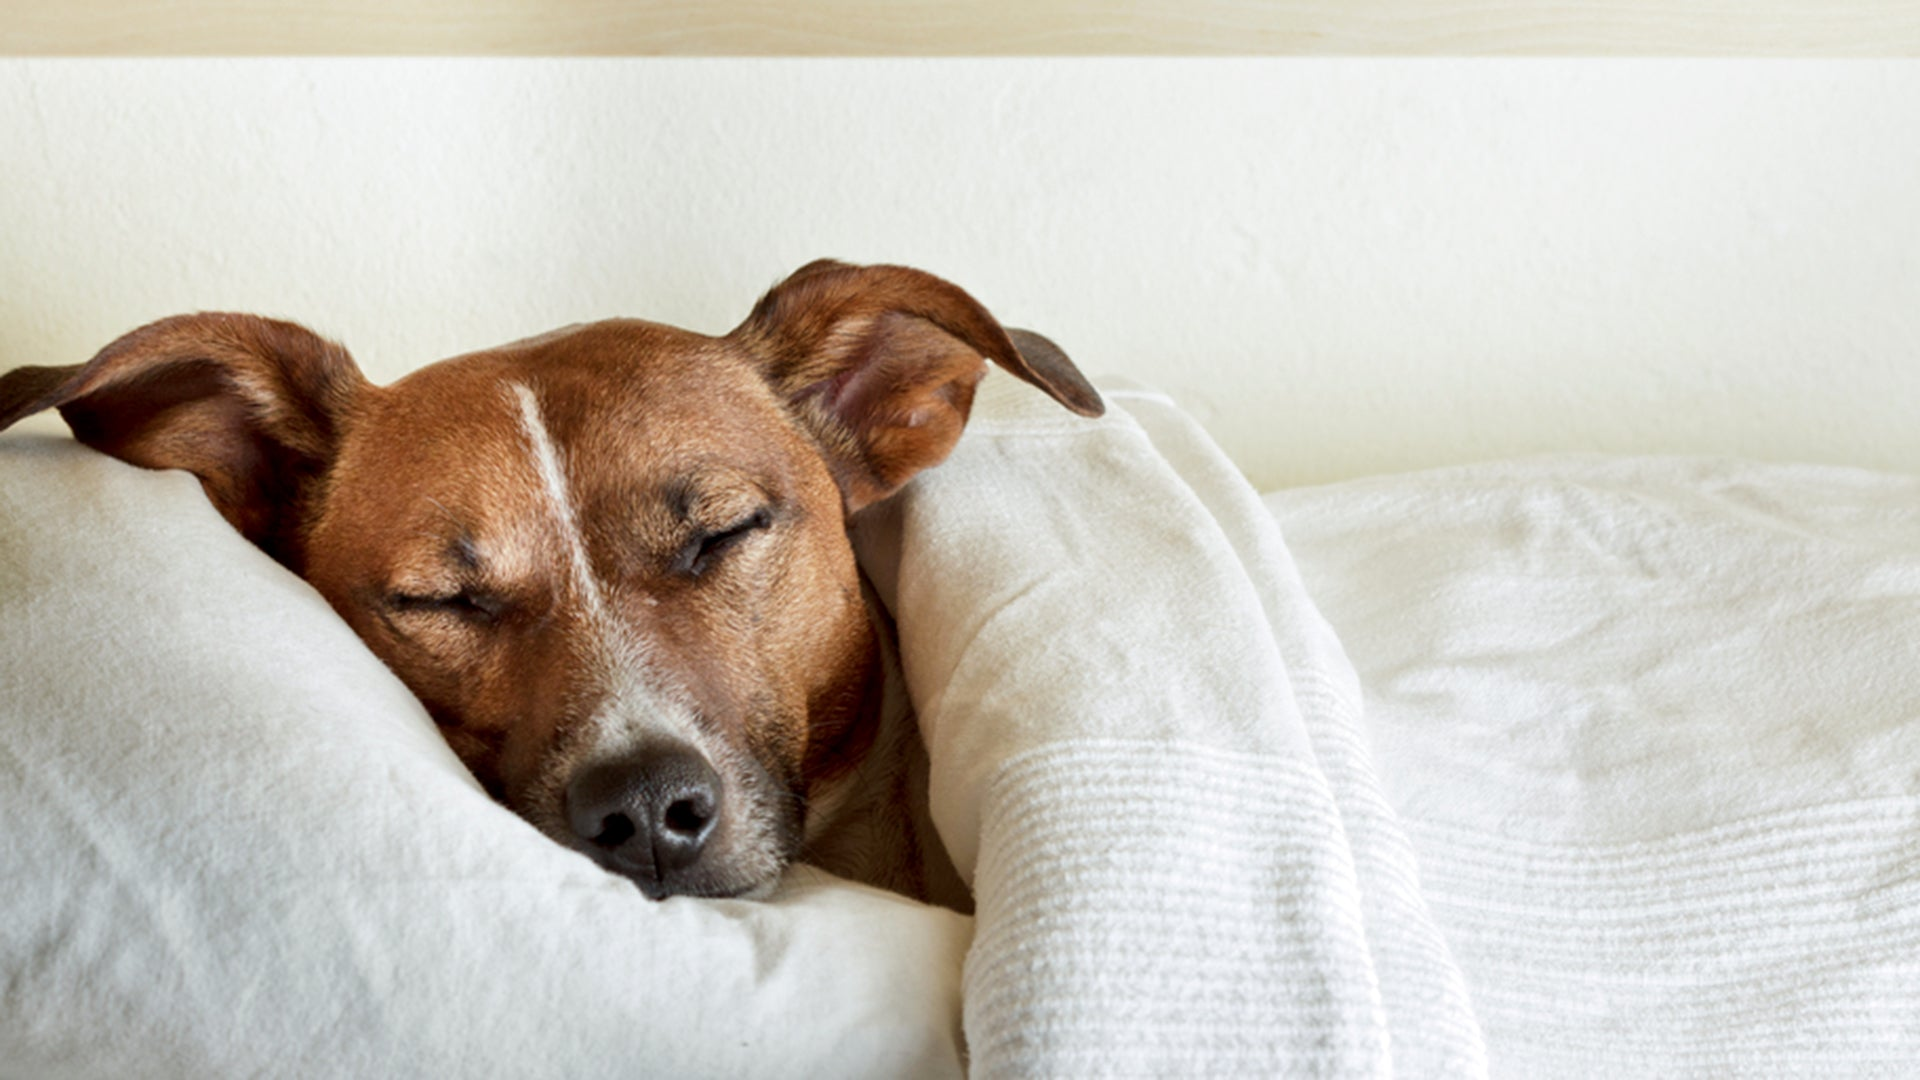 When You Dream About Dogs, What Are You Really Dreaming About?